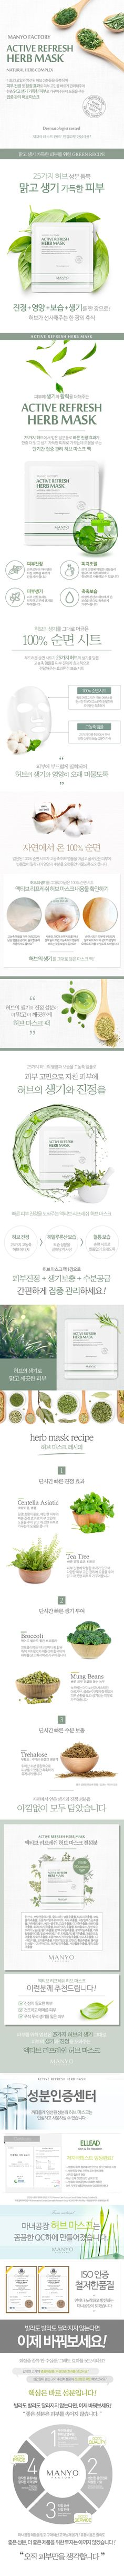 마녀공장 - 좋은성분은 피부를 속이지 않습니다. Ad Design, Flyer Design, Layout Design, Branding Design, Korea Design, Cosmetic Design, Website Design Inspiration, Web Layout, Social Media Design